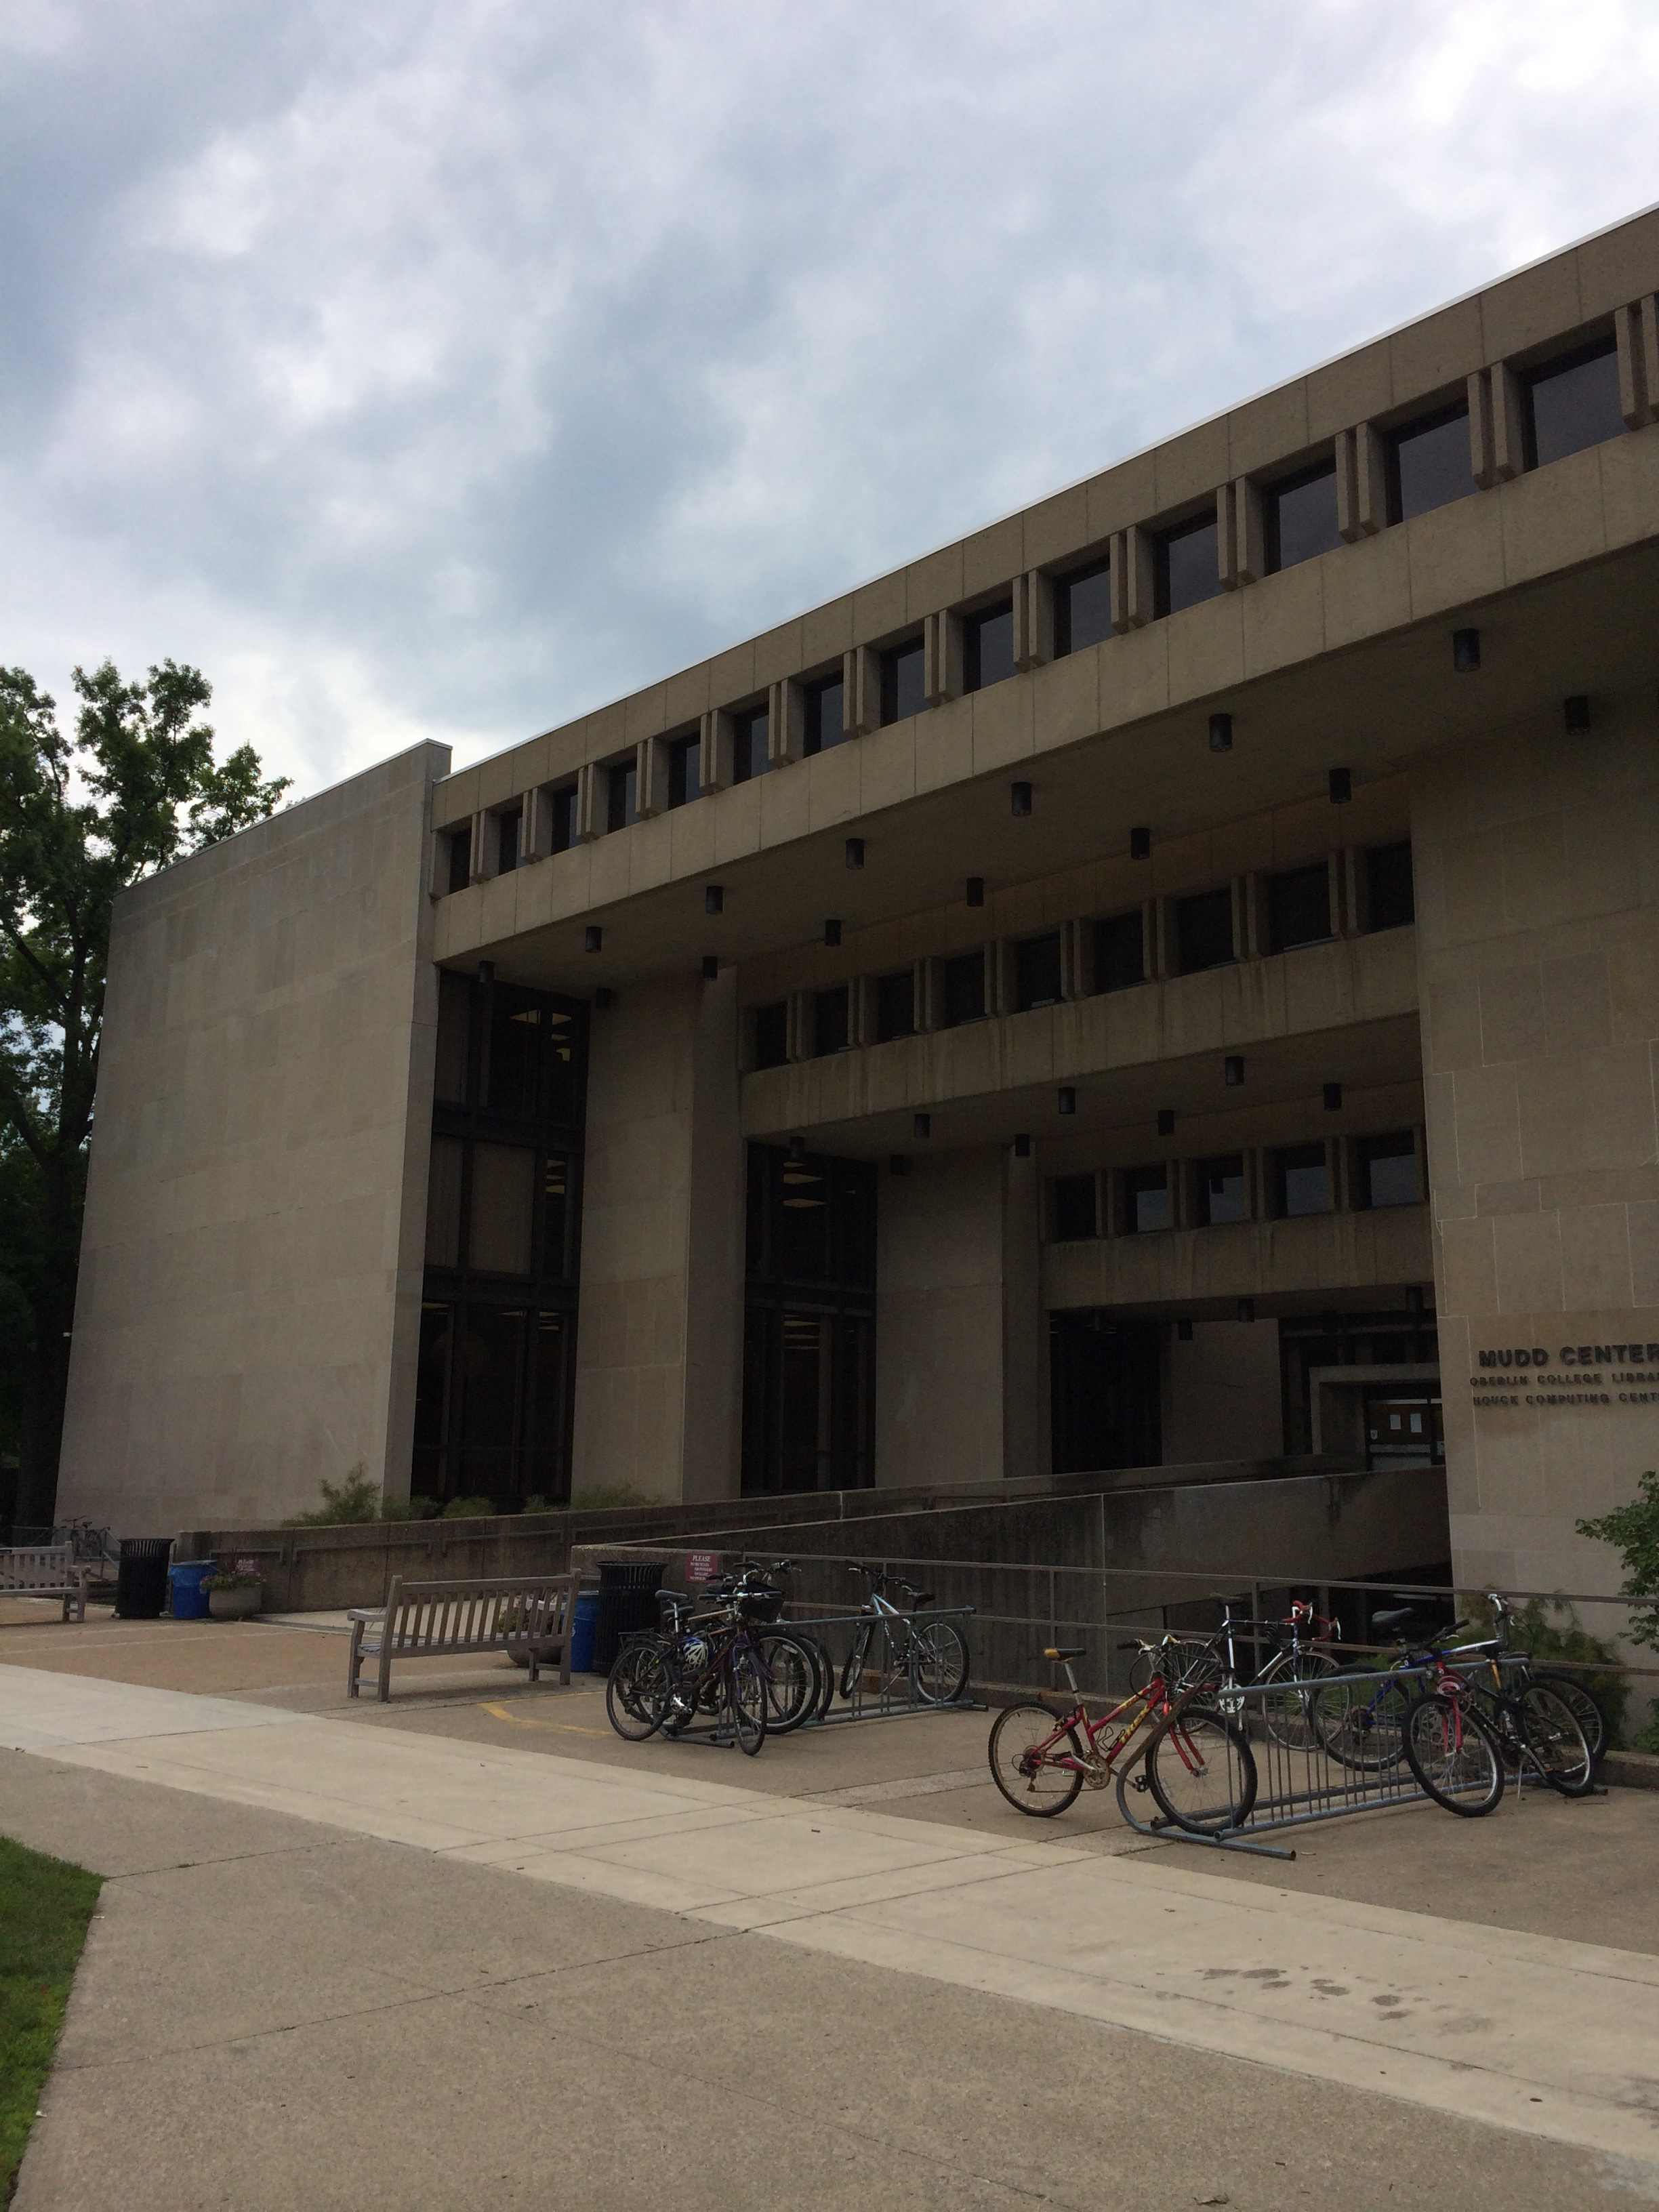 Mudd Library, the finest in brutalism